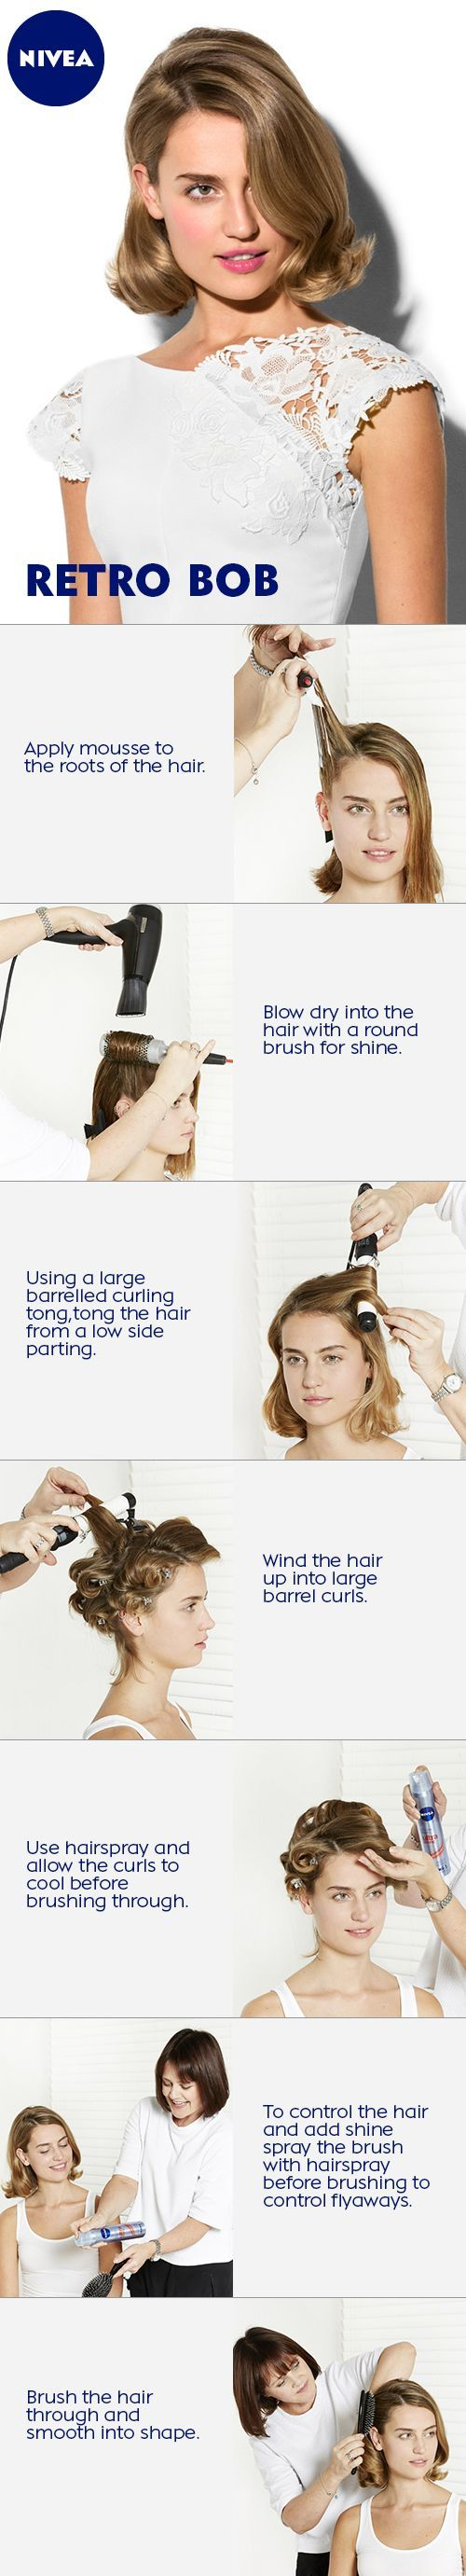 "This is how you make the elegant ""Retro Bob""! Have fun! #Hair #Hairstyle #Tutorial #DIY #Retro #Bob"